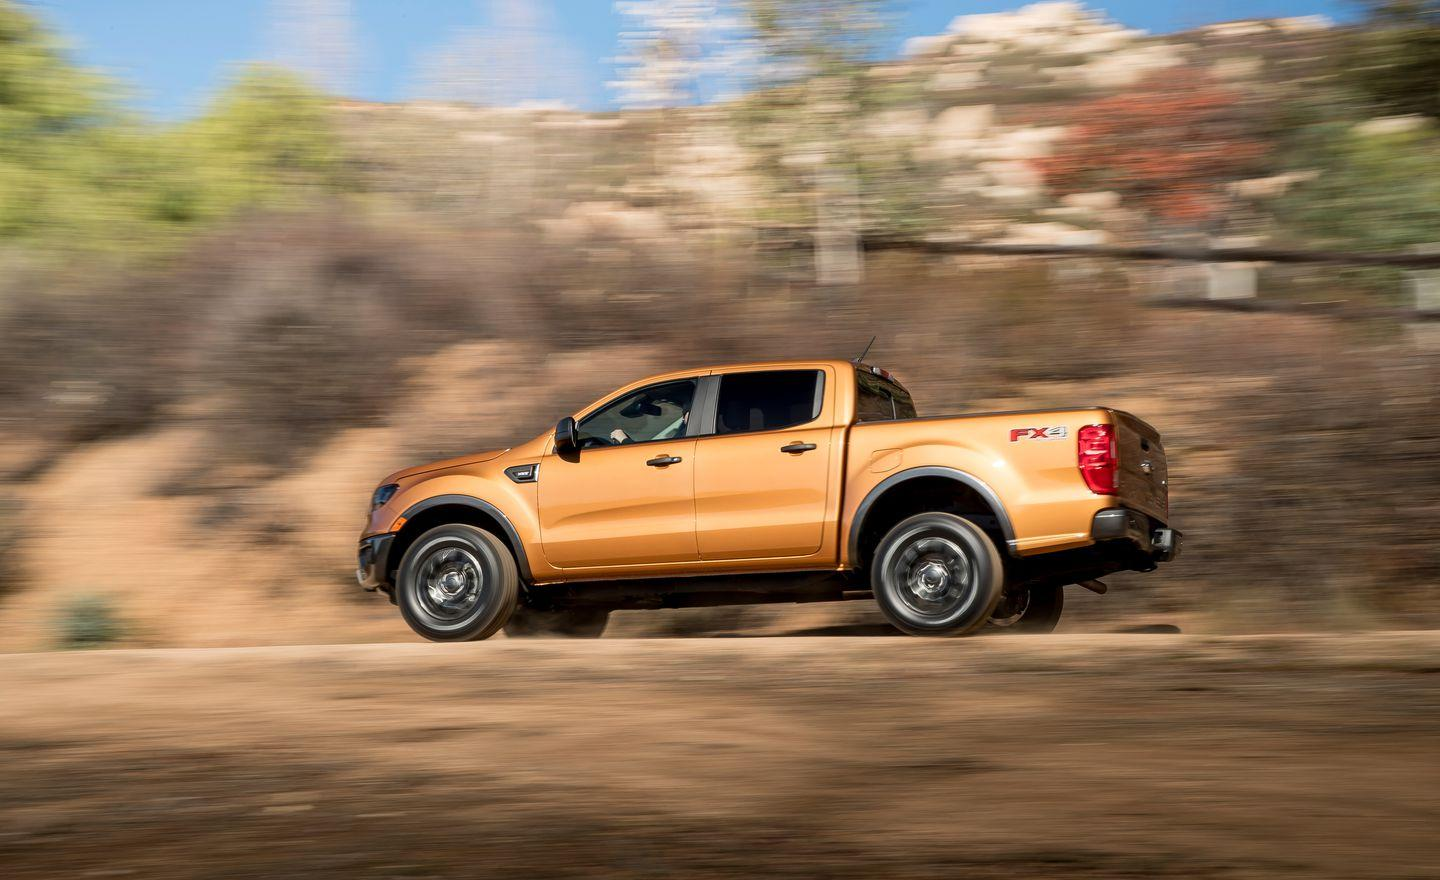 Every Photo You Need to See of the 2019 Ford Ranger Pickup